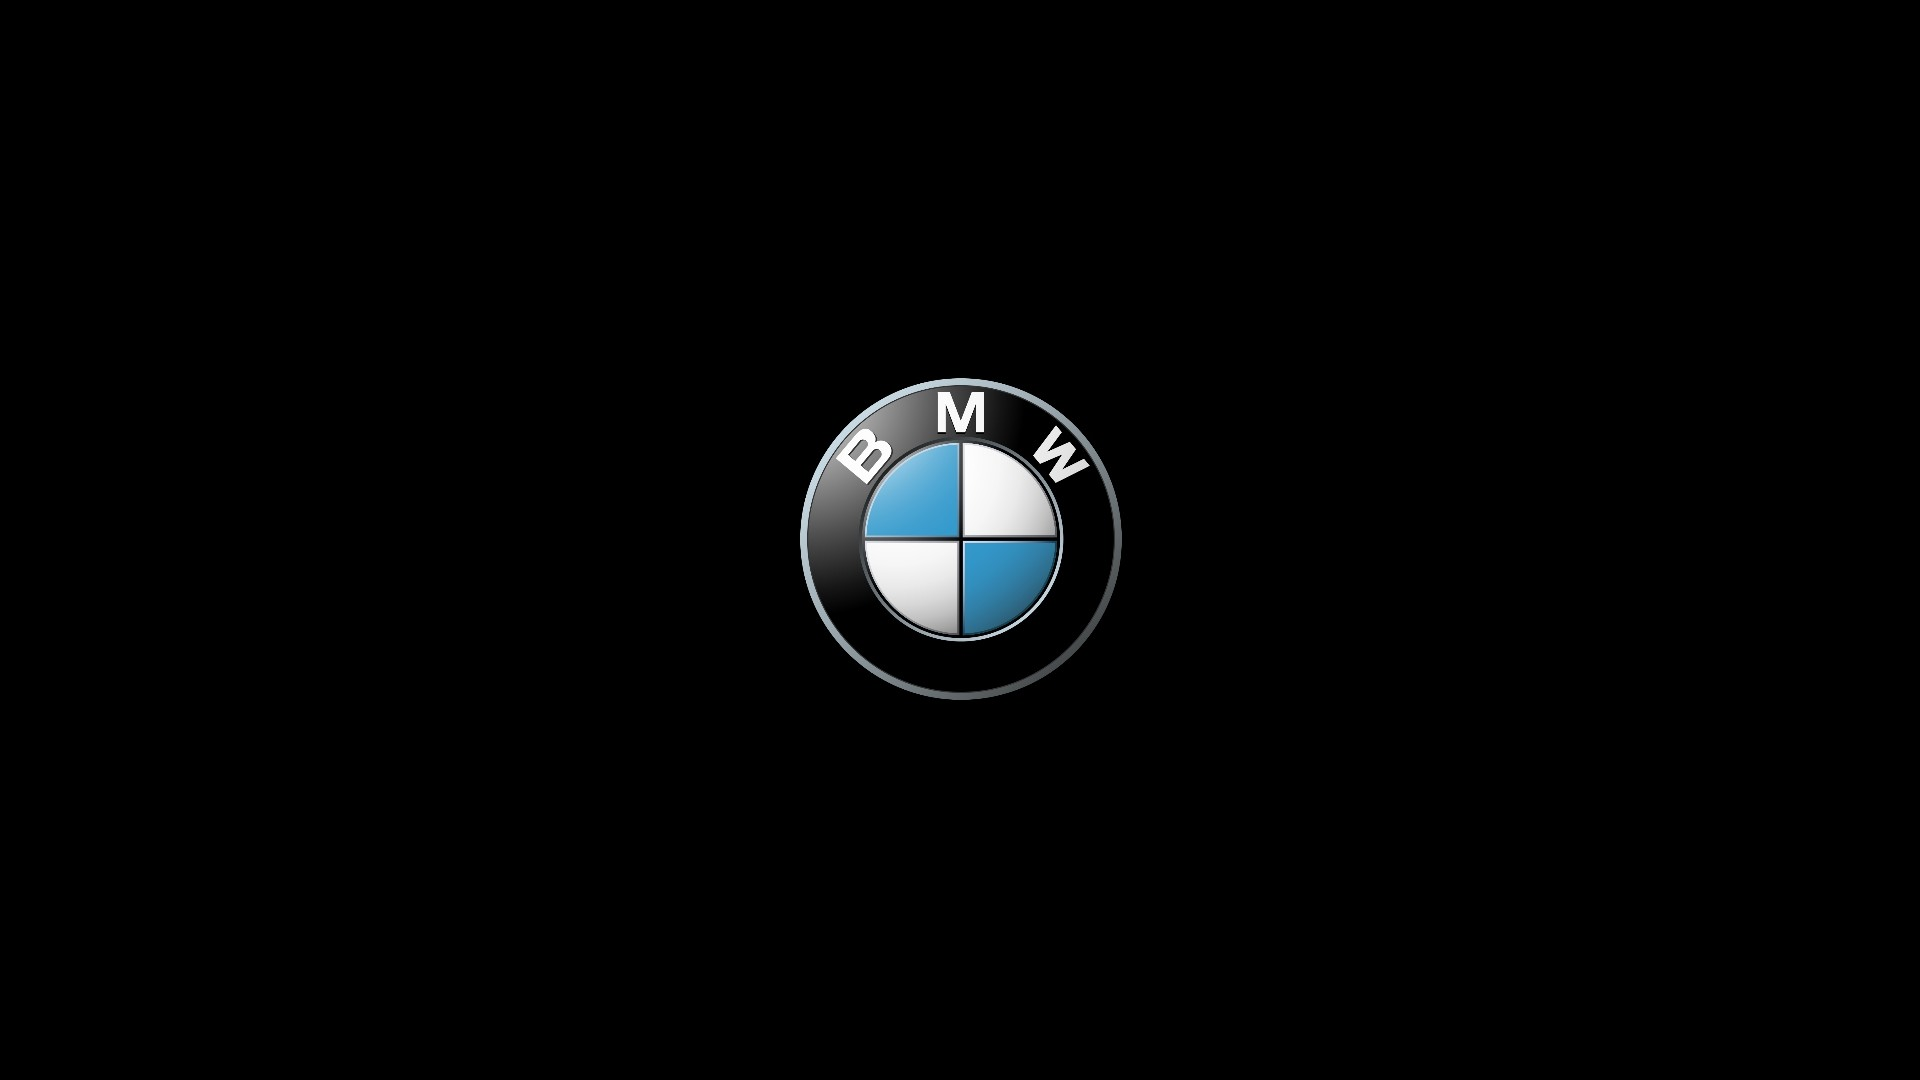 Bmw Logo 2020 Wallpaper